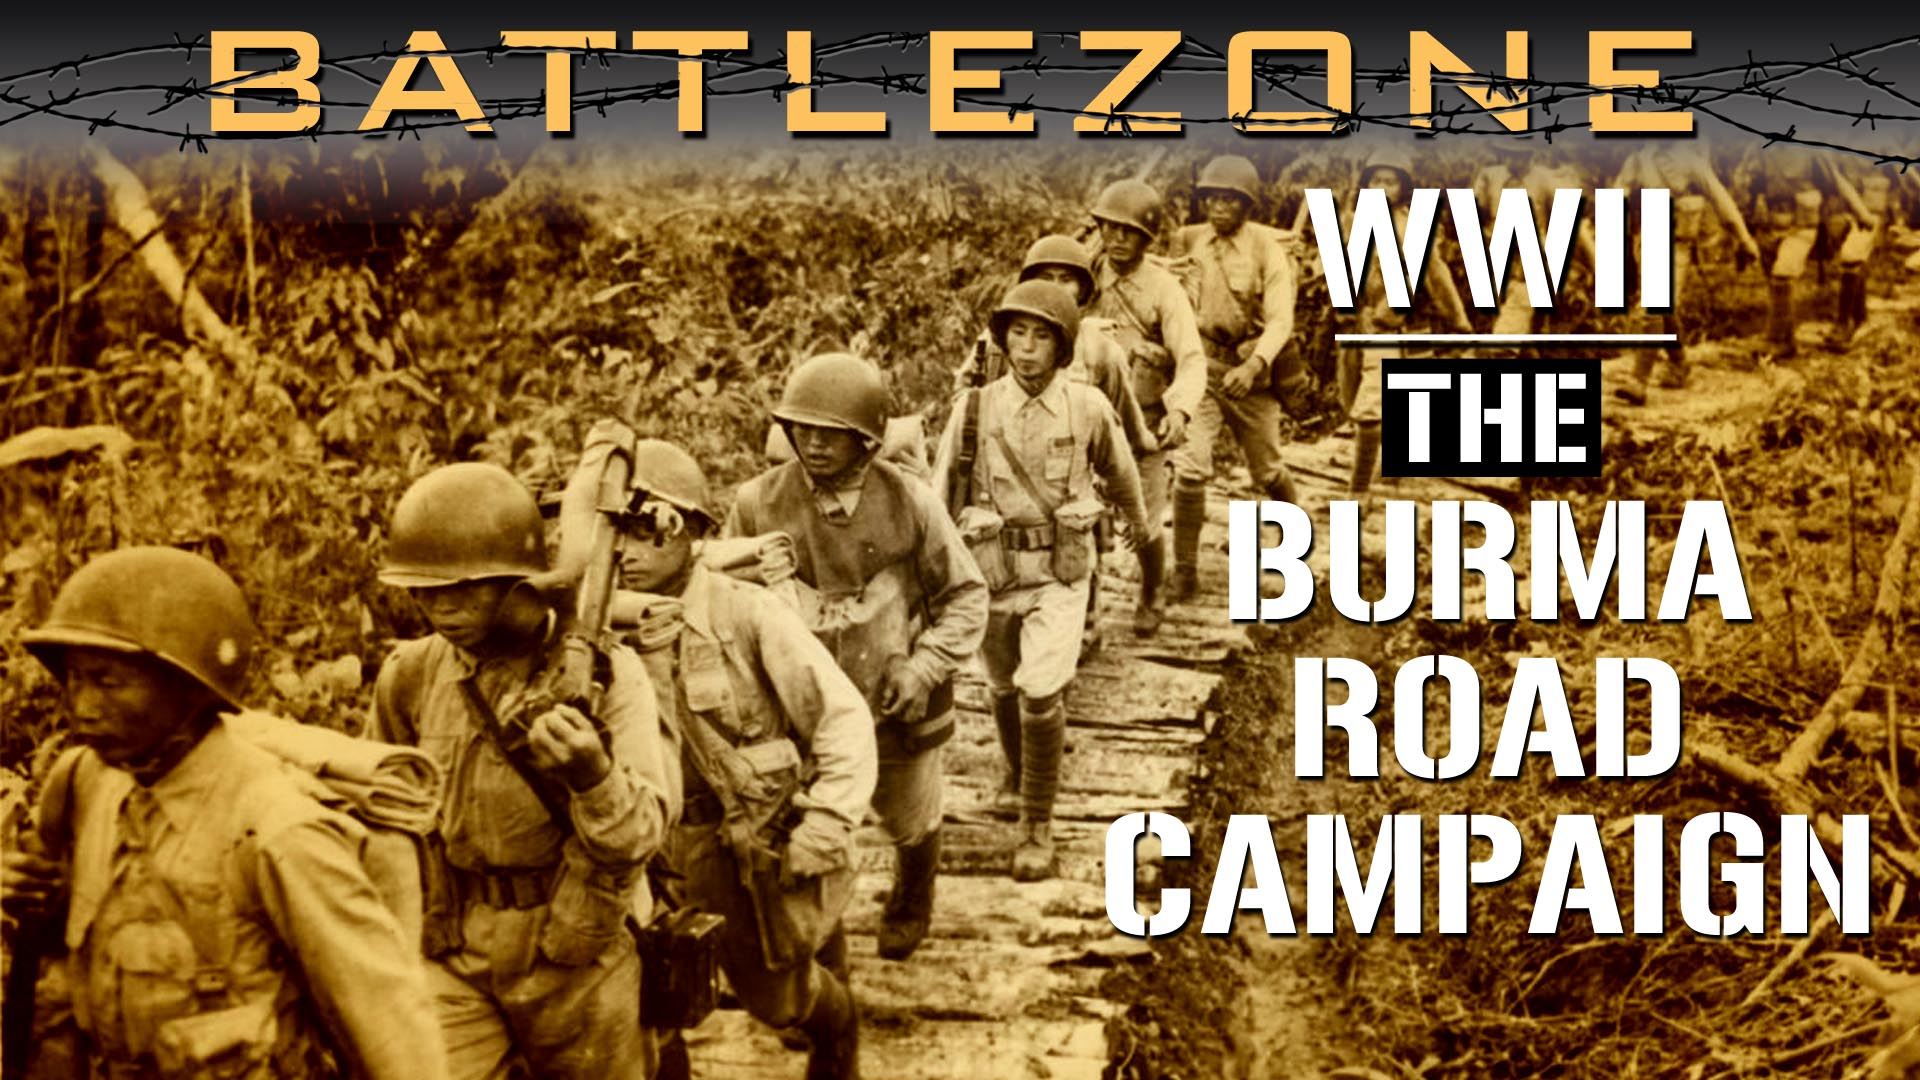 Battlezone WWII: The Burma Road Campaign